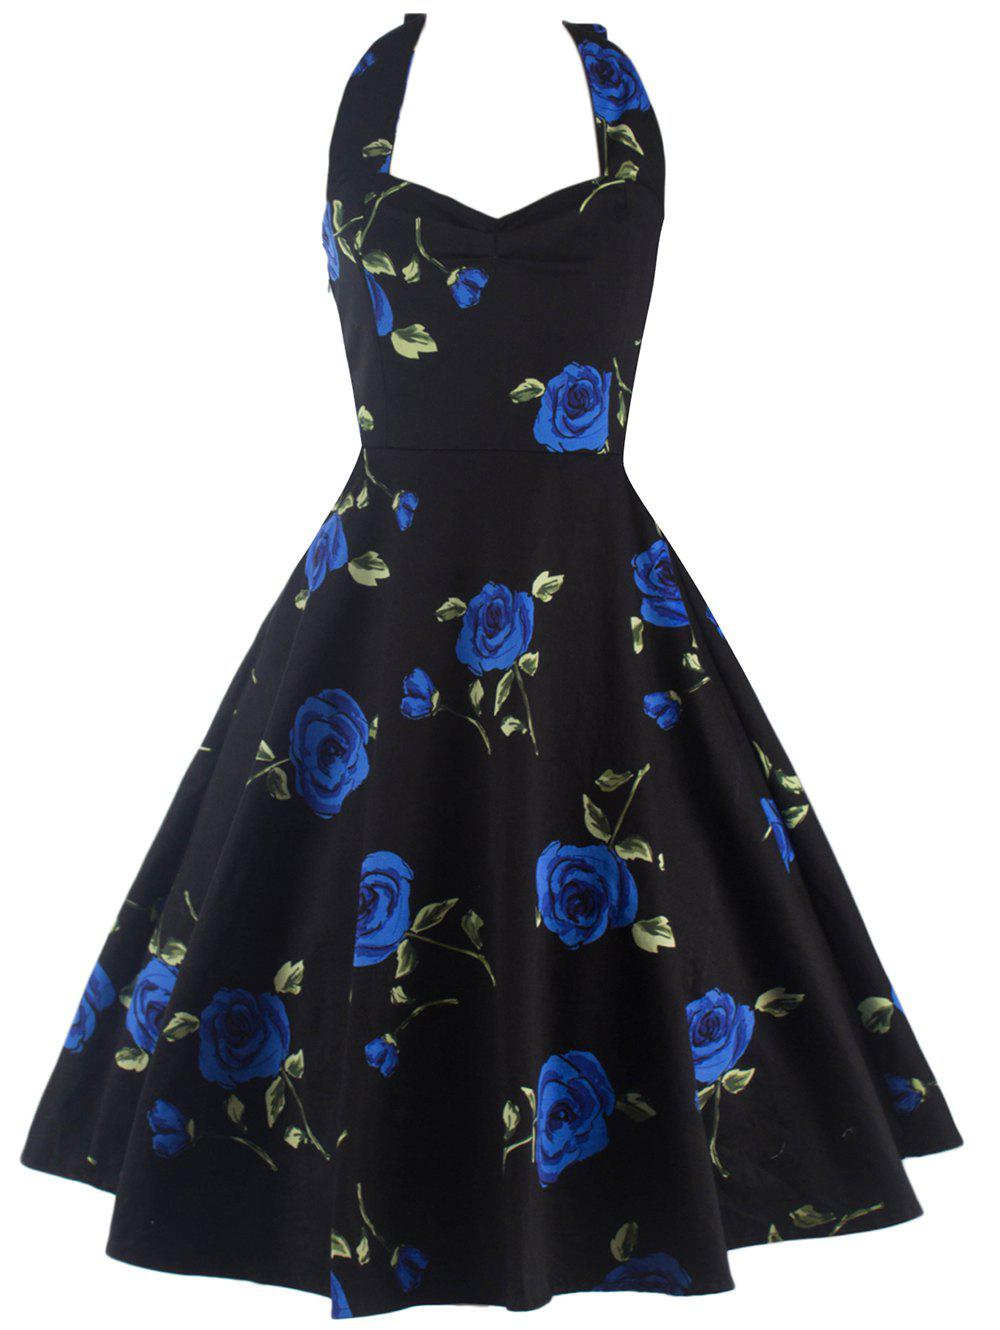 Halter Floral A Line Cocktail Skater Dress gibson prtk 059 historic toggle switch caps 2 pcs